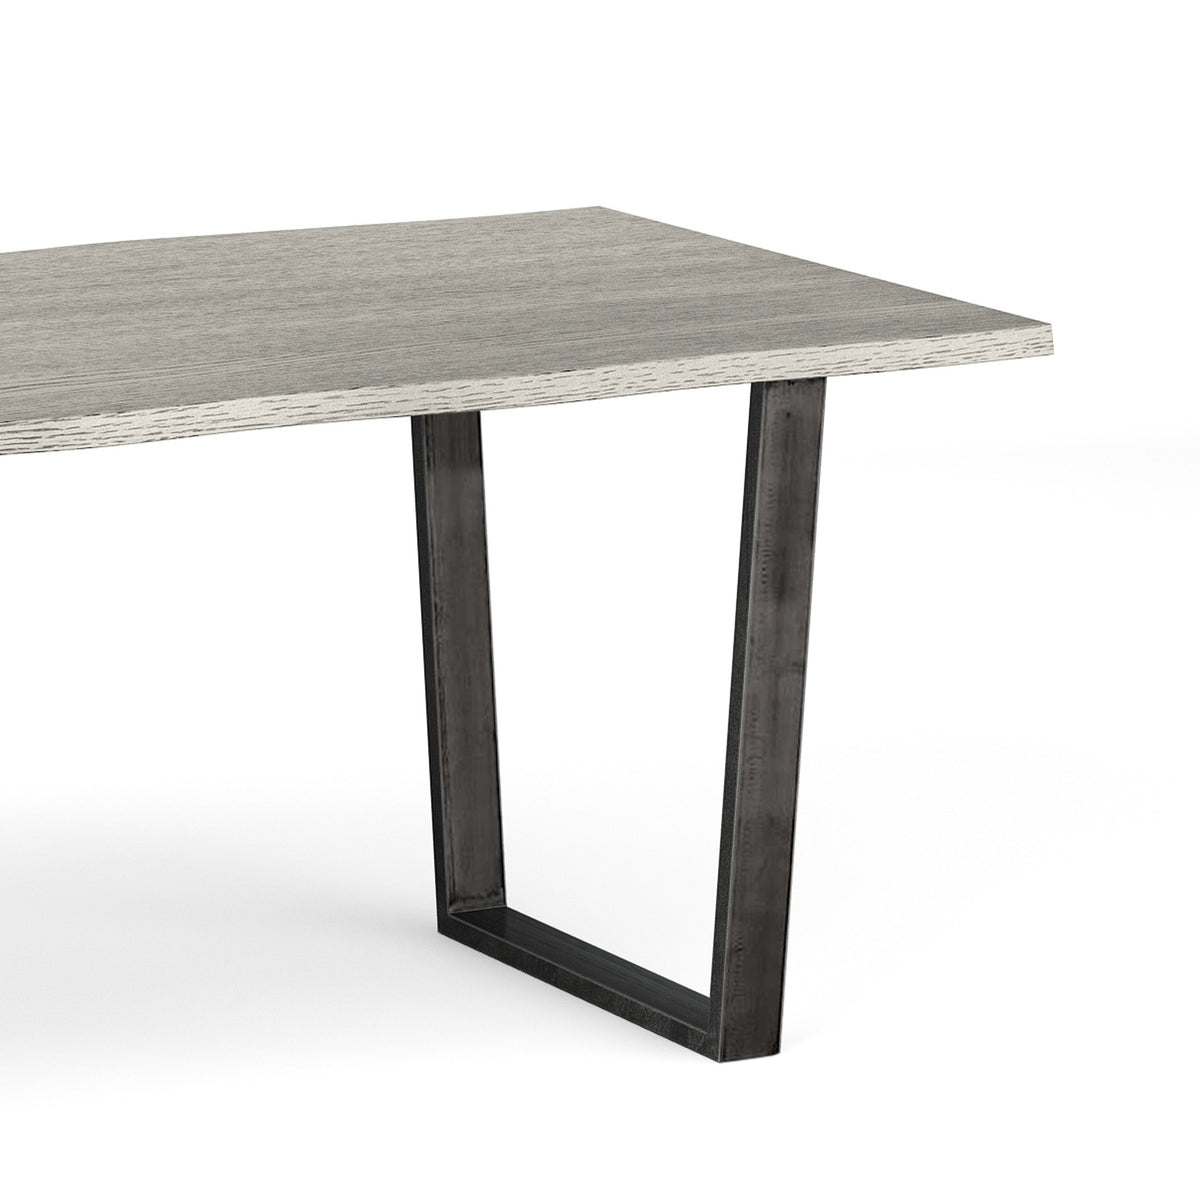 Soho Large Industrial Grey Dining Table - Close up of Oak Top and Metal Legs